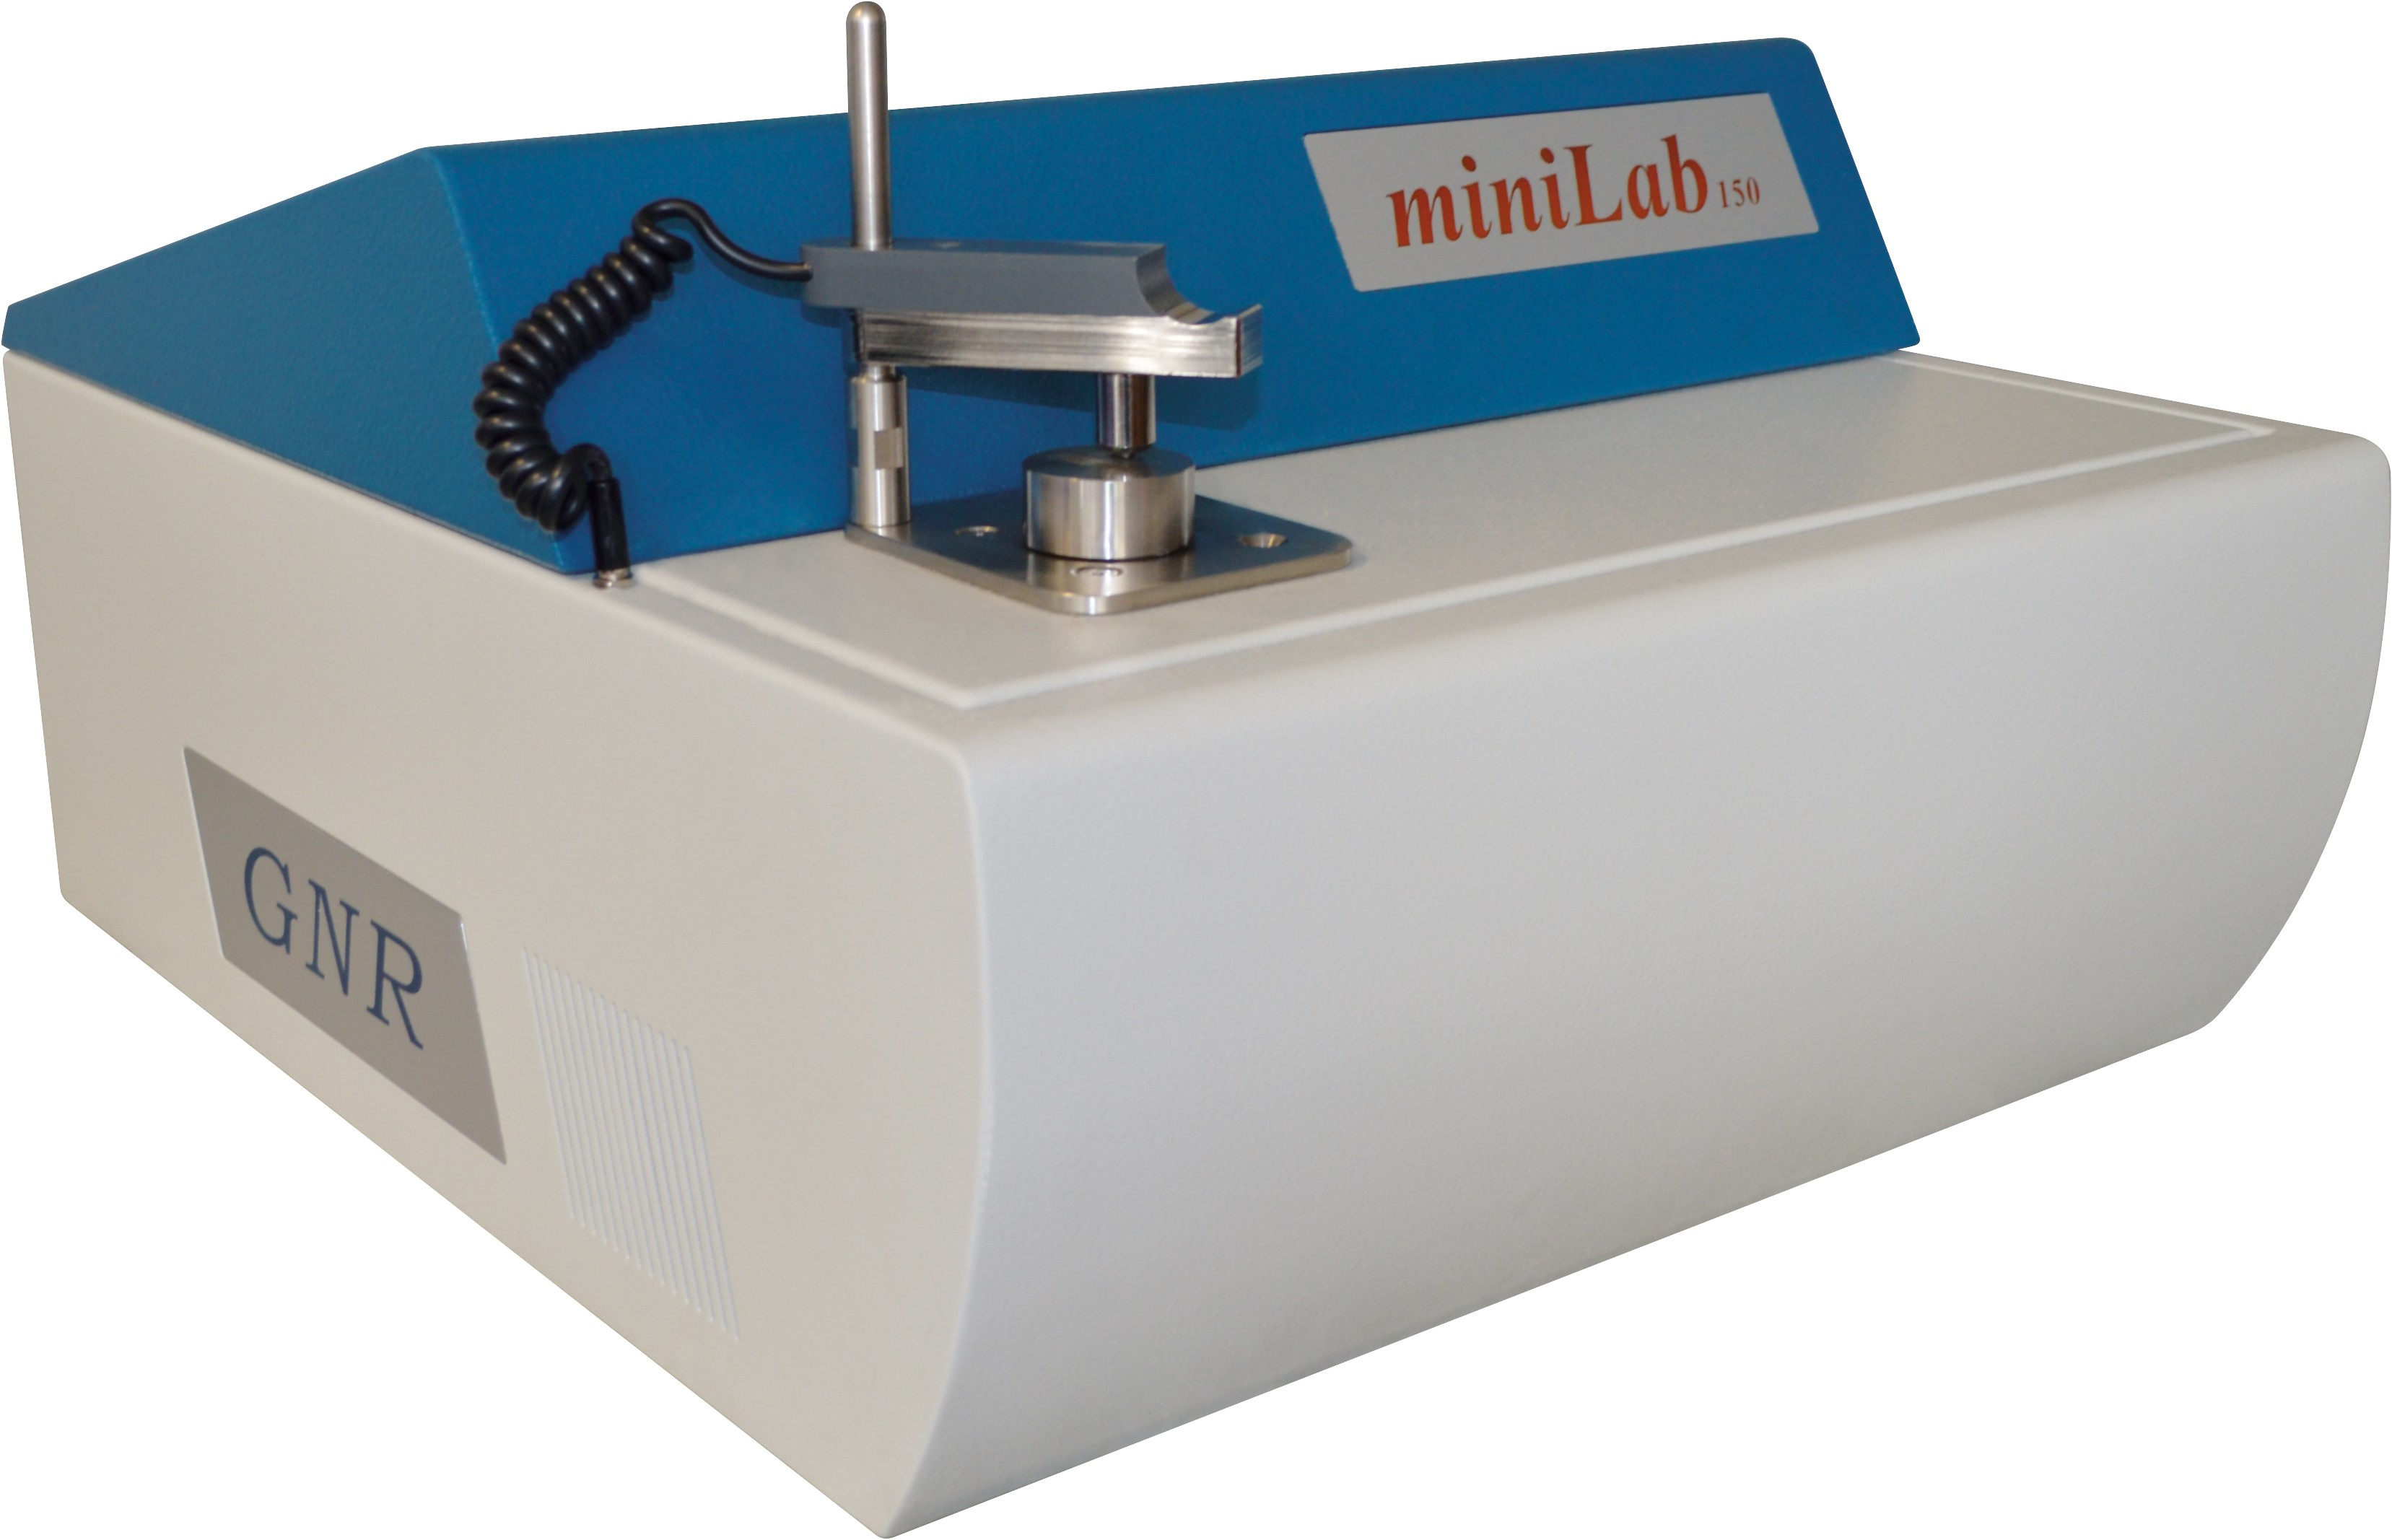 Mini Lab 150 front side